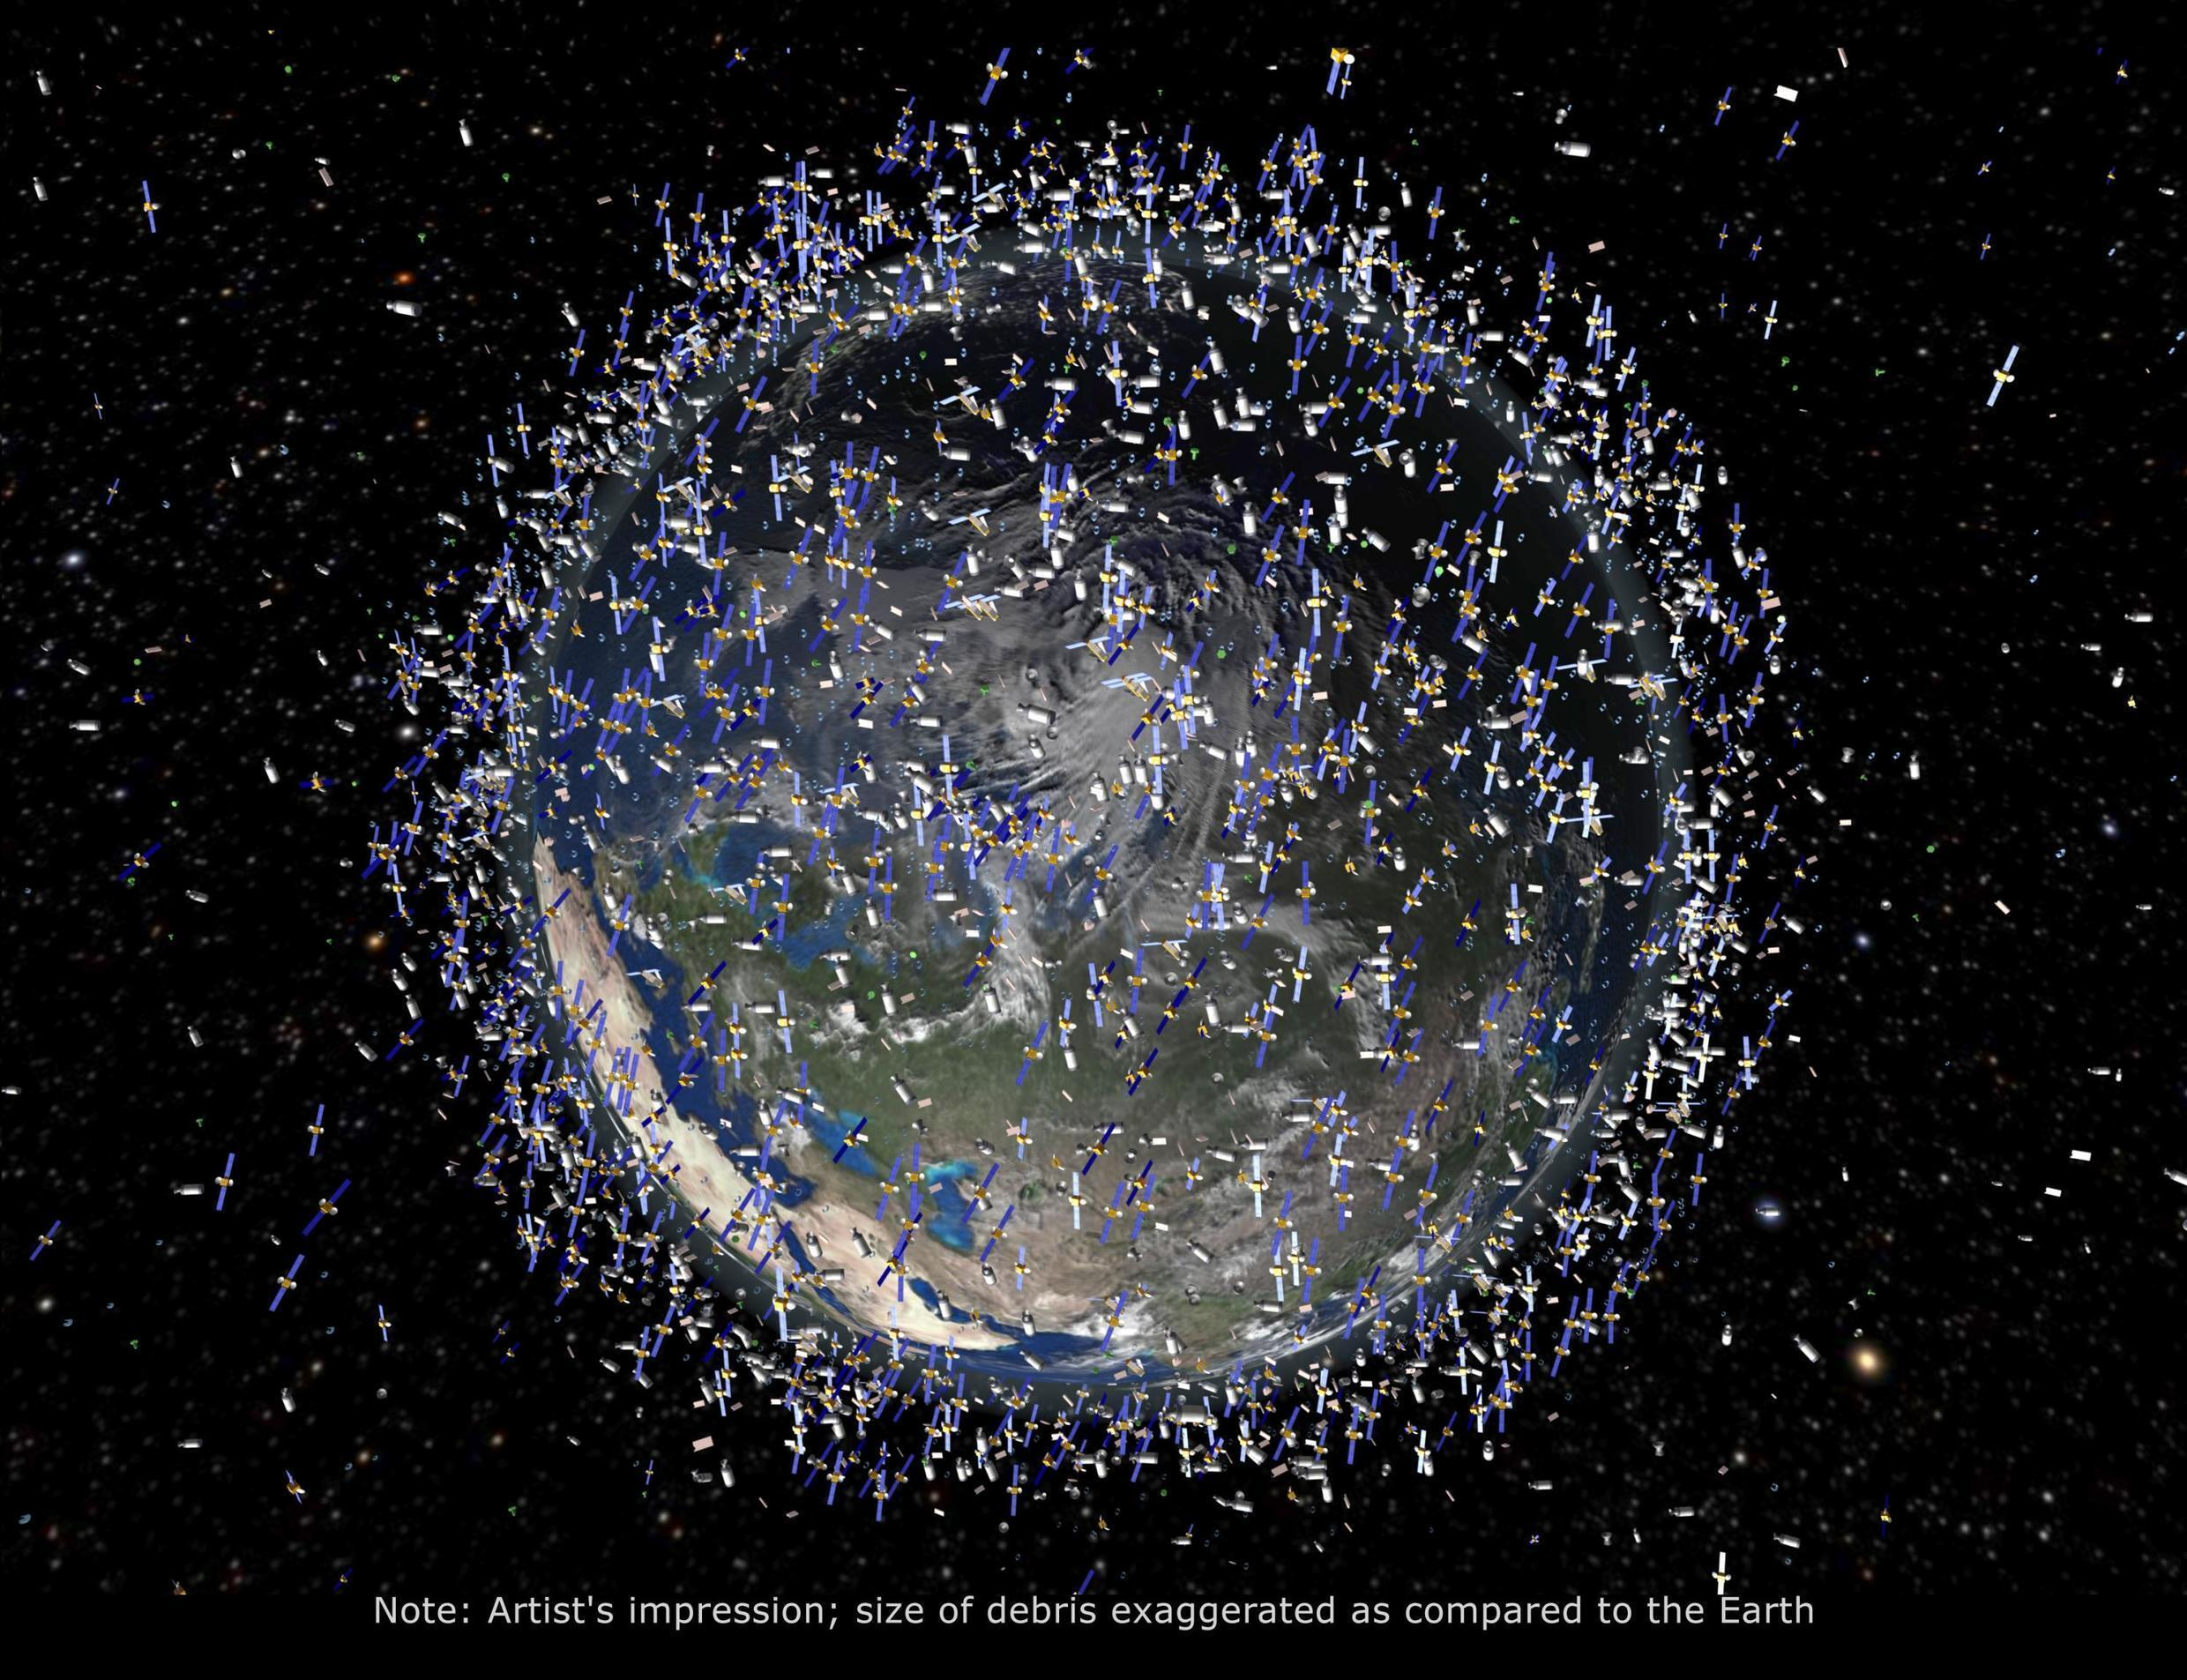 An artist's impression released by the European Space Agency depicting the debris field in low Earth orbit, which extends to 2000 kilometres above the Earth's surface.